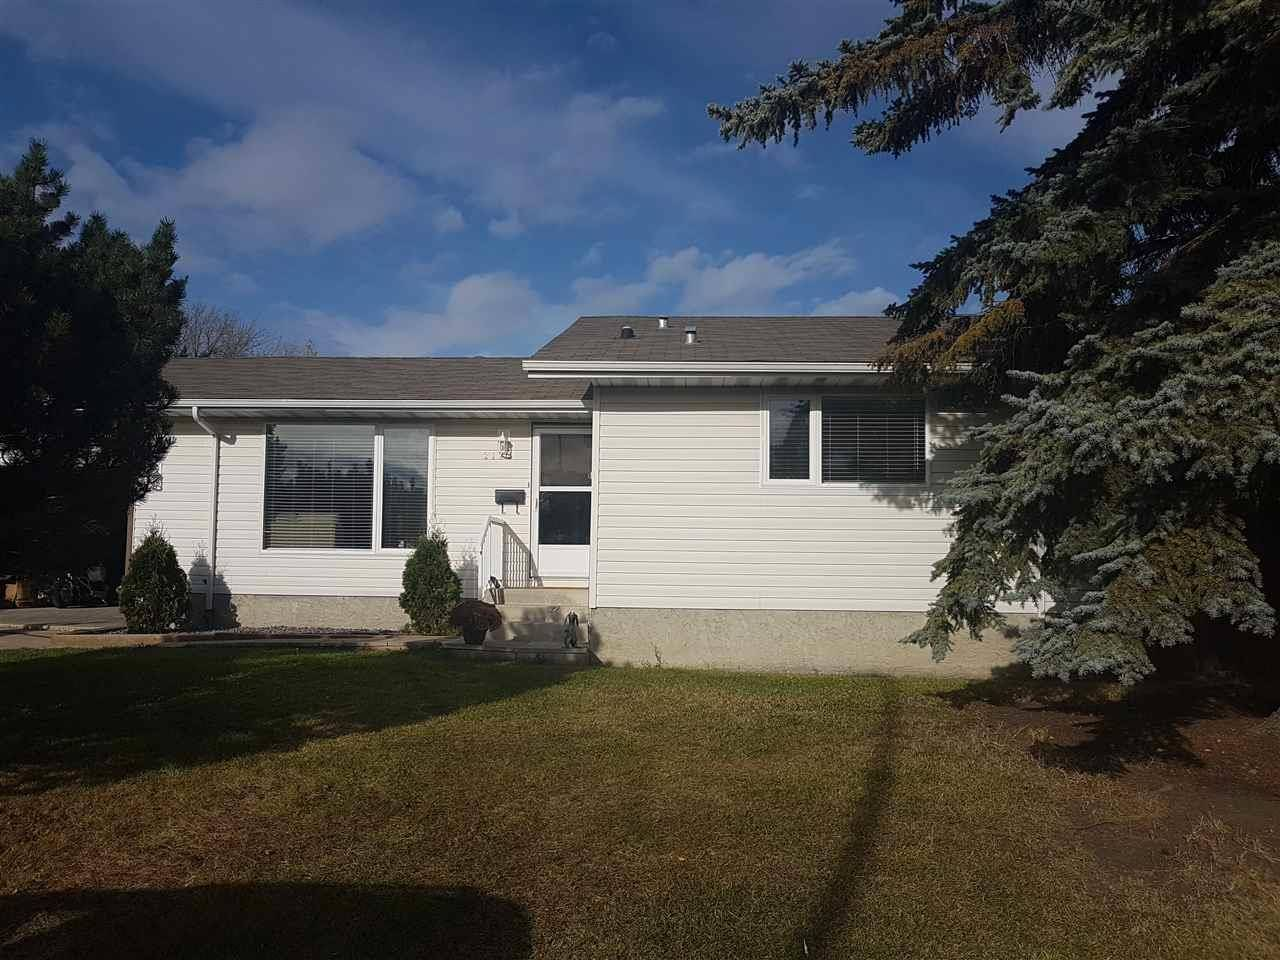 House for sale at 2124 140 Ave Nw Edmonton Alberta - MLS: E4176475